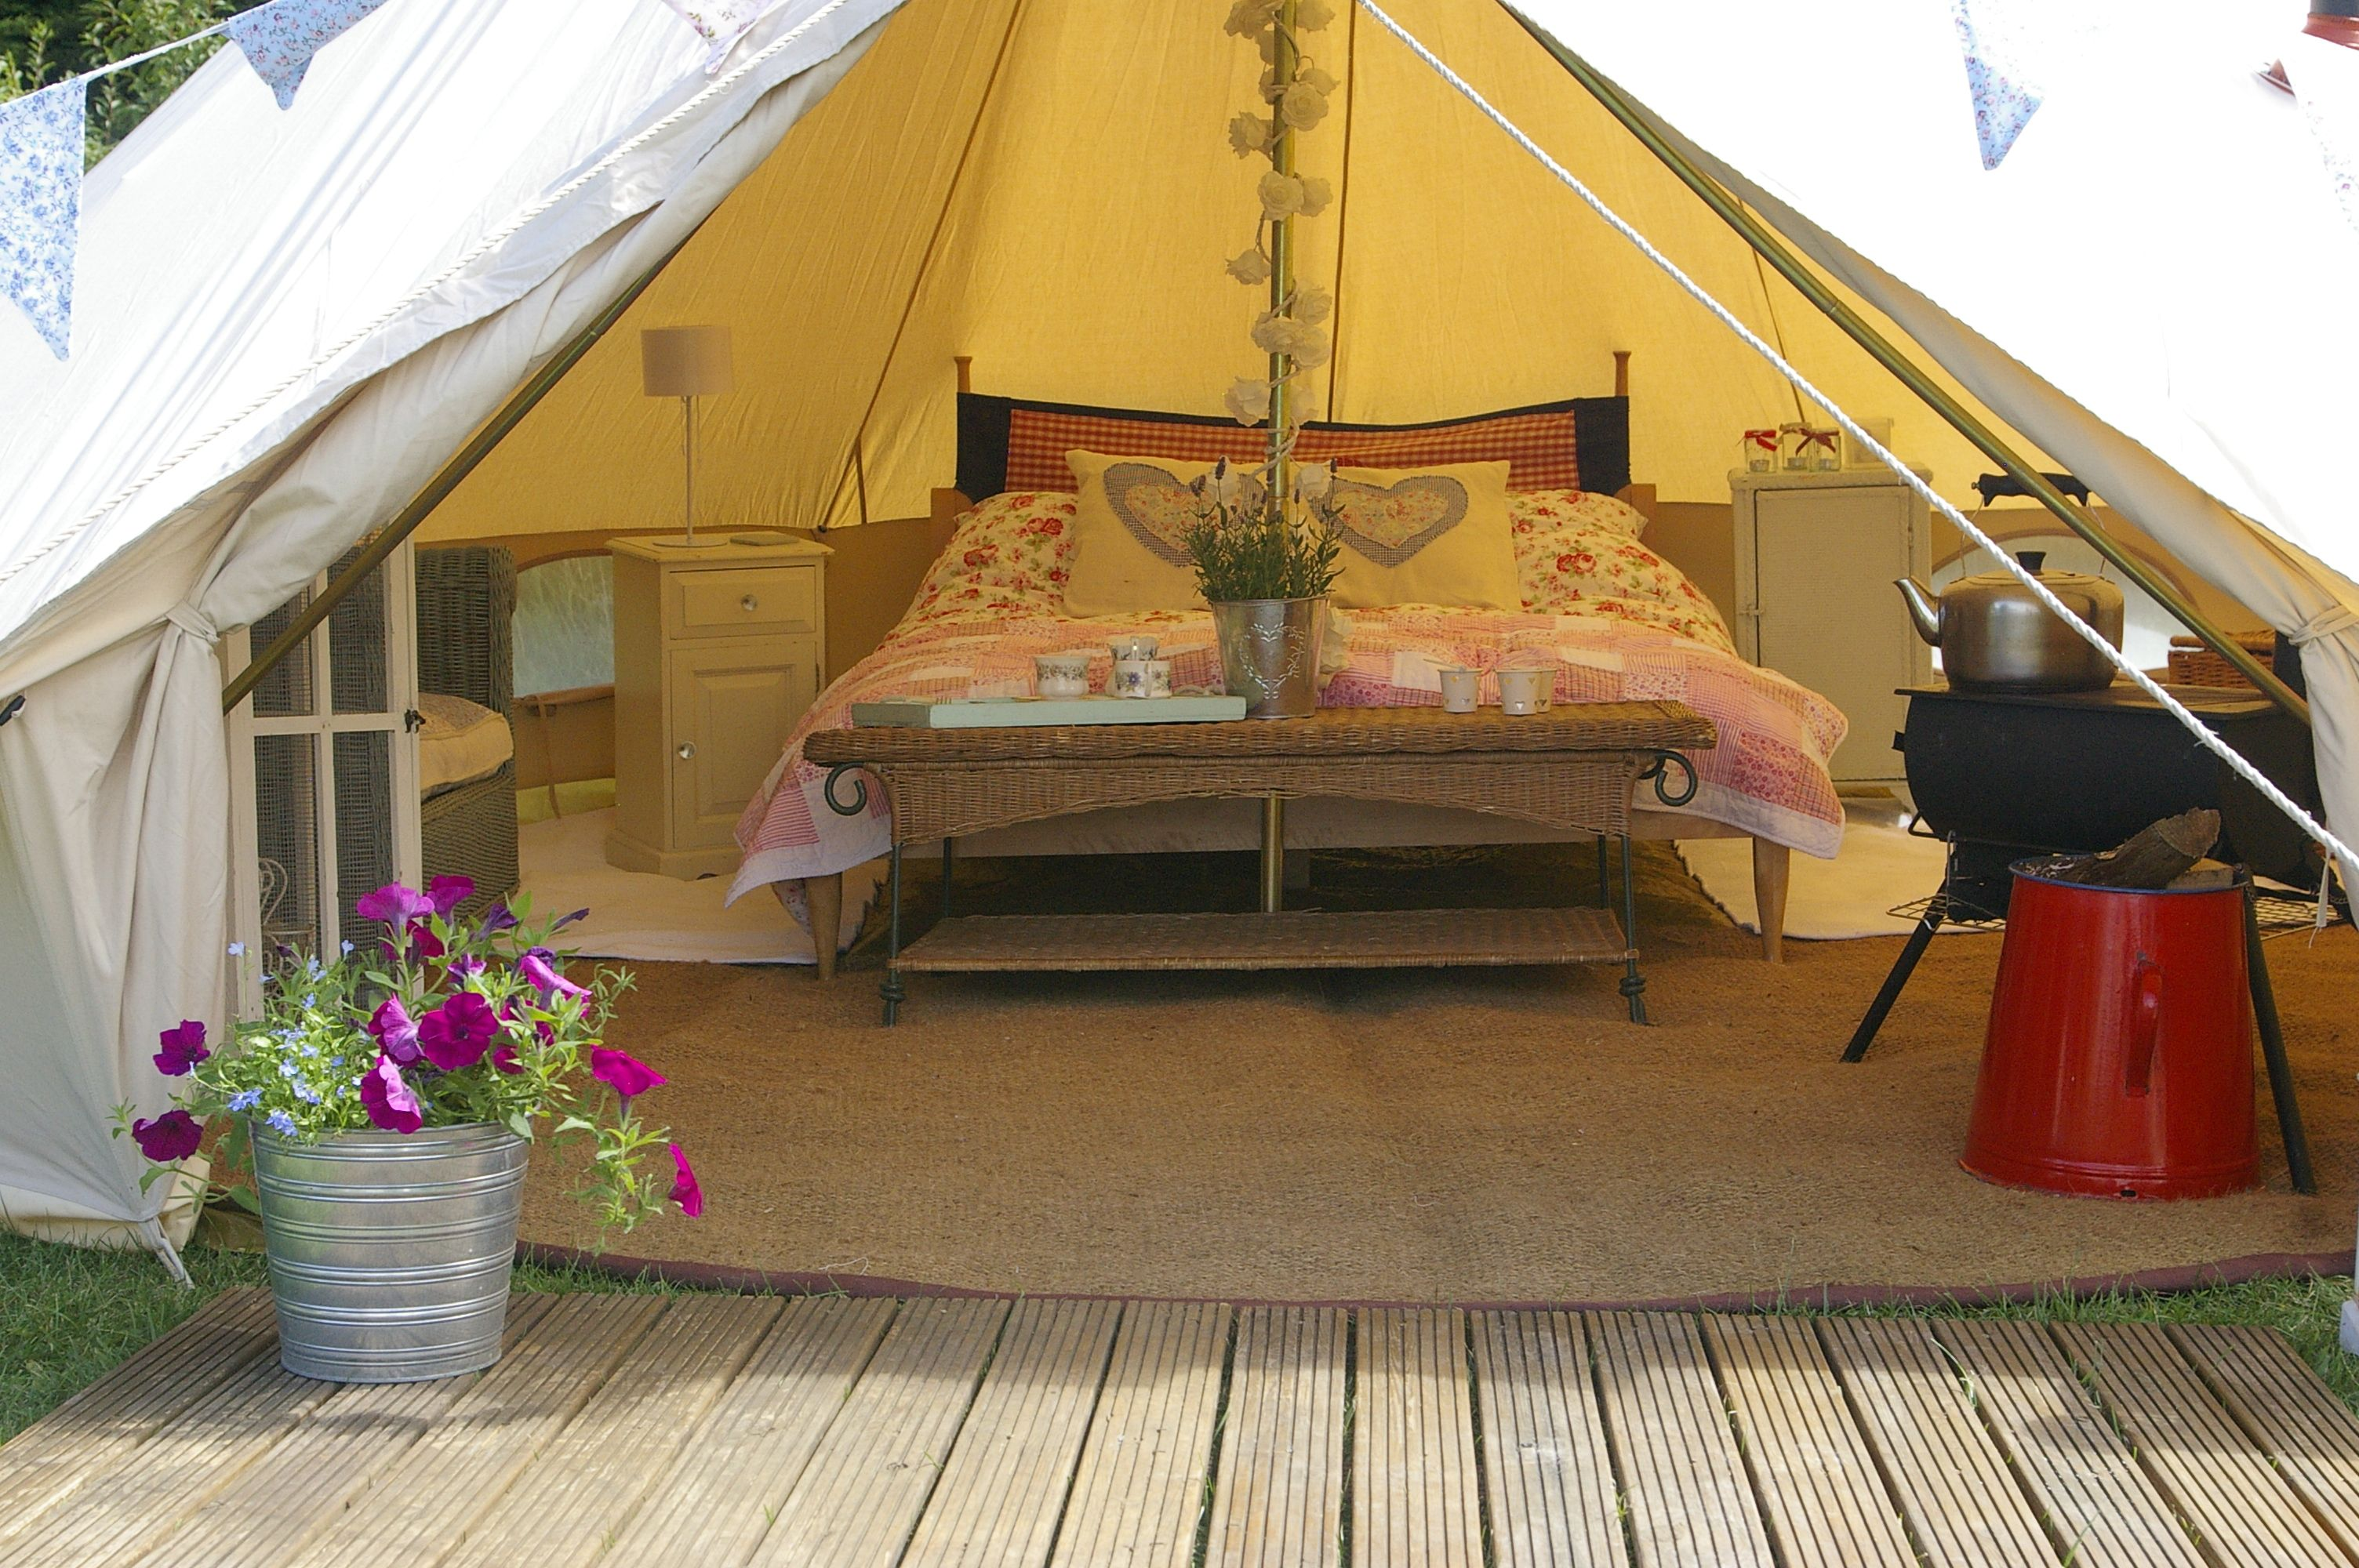 #Gl&ing #Bell Tent #Luxury .thecanvascottagecompany.co.uk & Glamping #Bell Tent #Luxury www.thecanvascottagecompany.co.uk ...